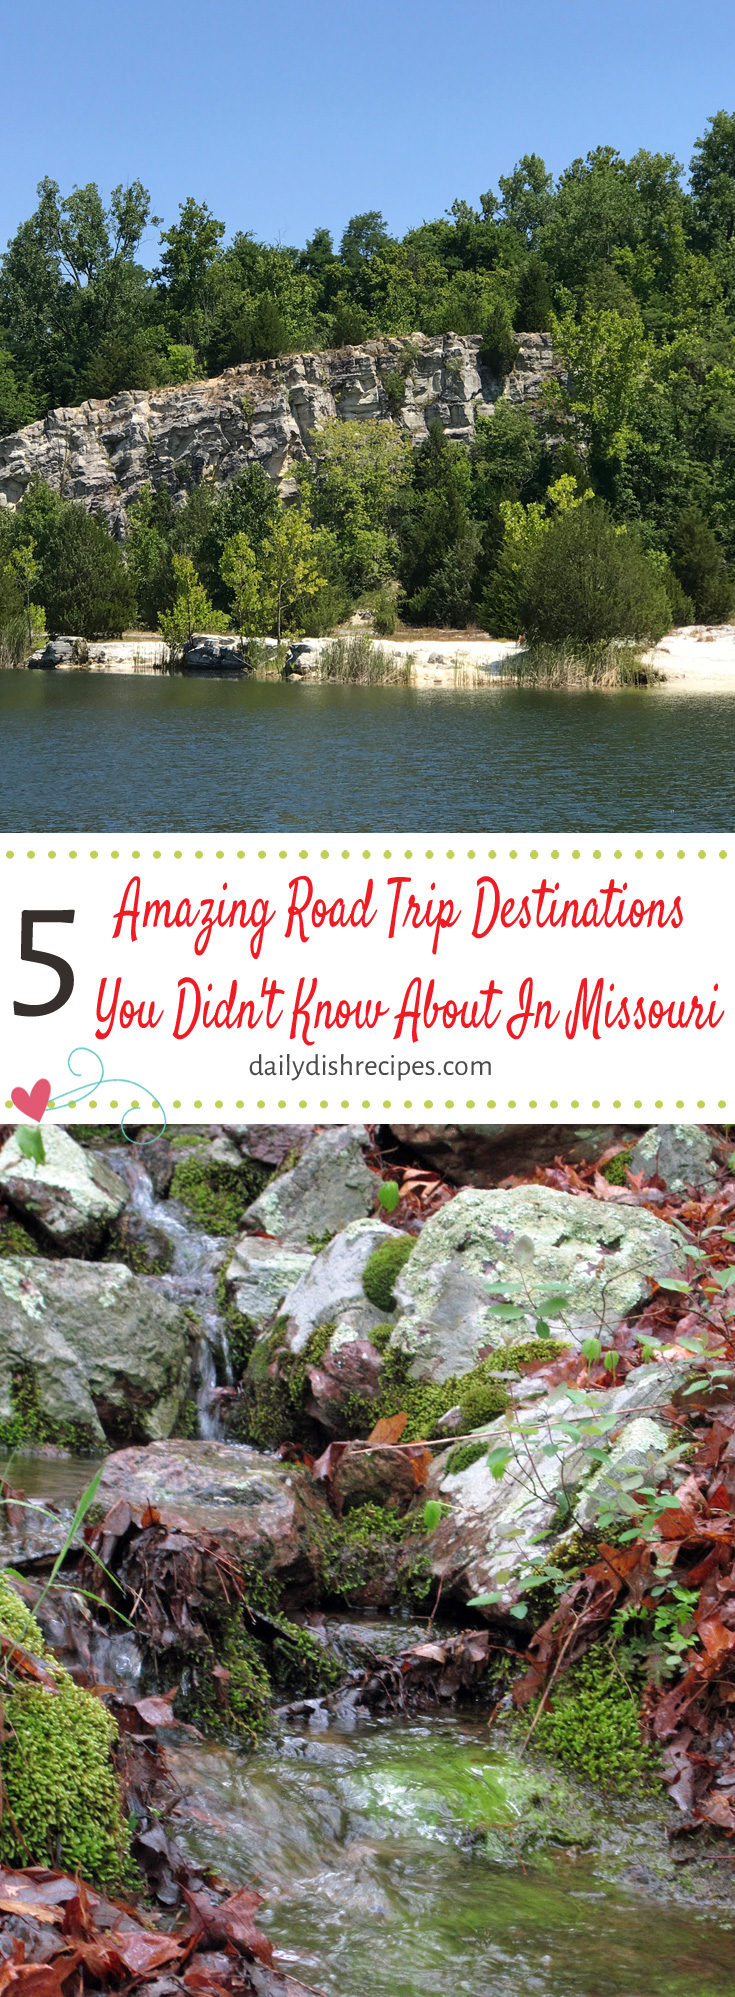 Amazing Road Trip Destinations You Didn't Know About In Missouri - St. Charles, MO - Klondike Park, Arcadia Valley, MO, Eminence, MO - State Parks